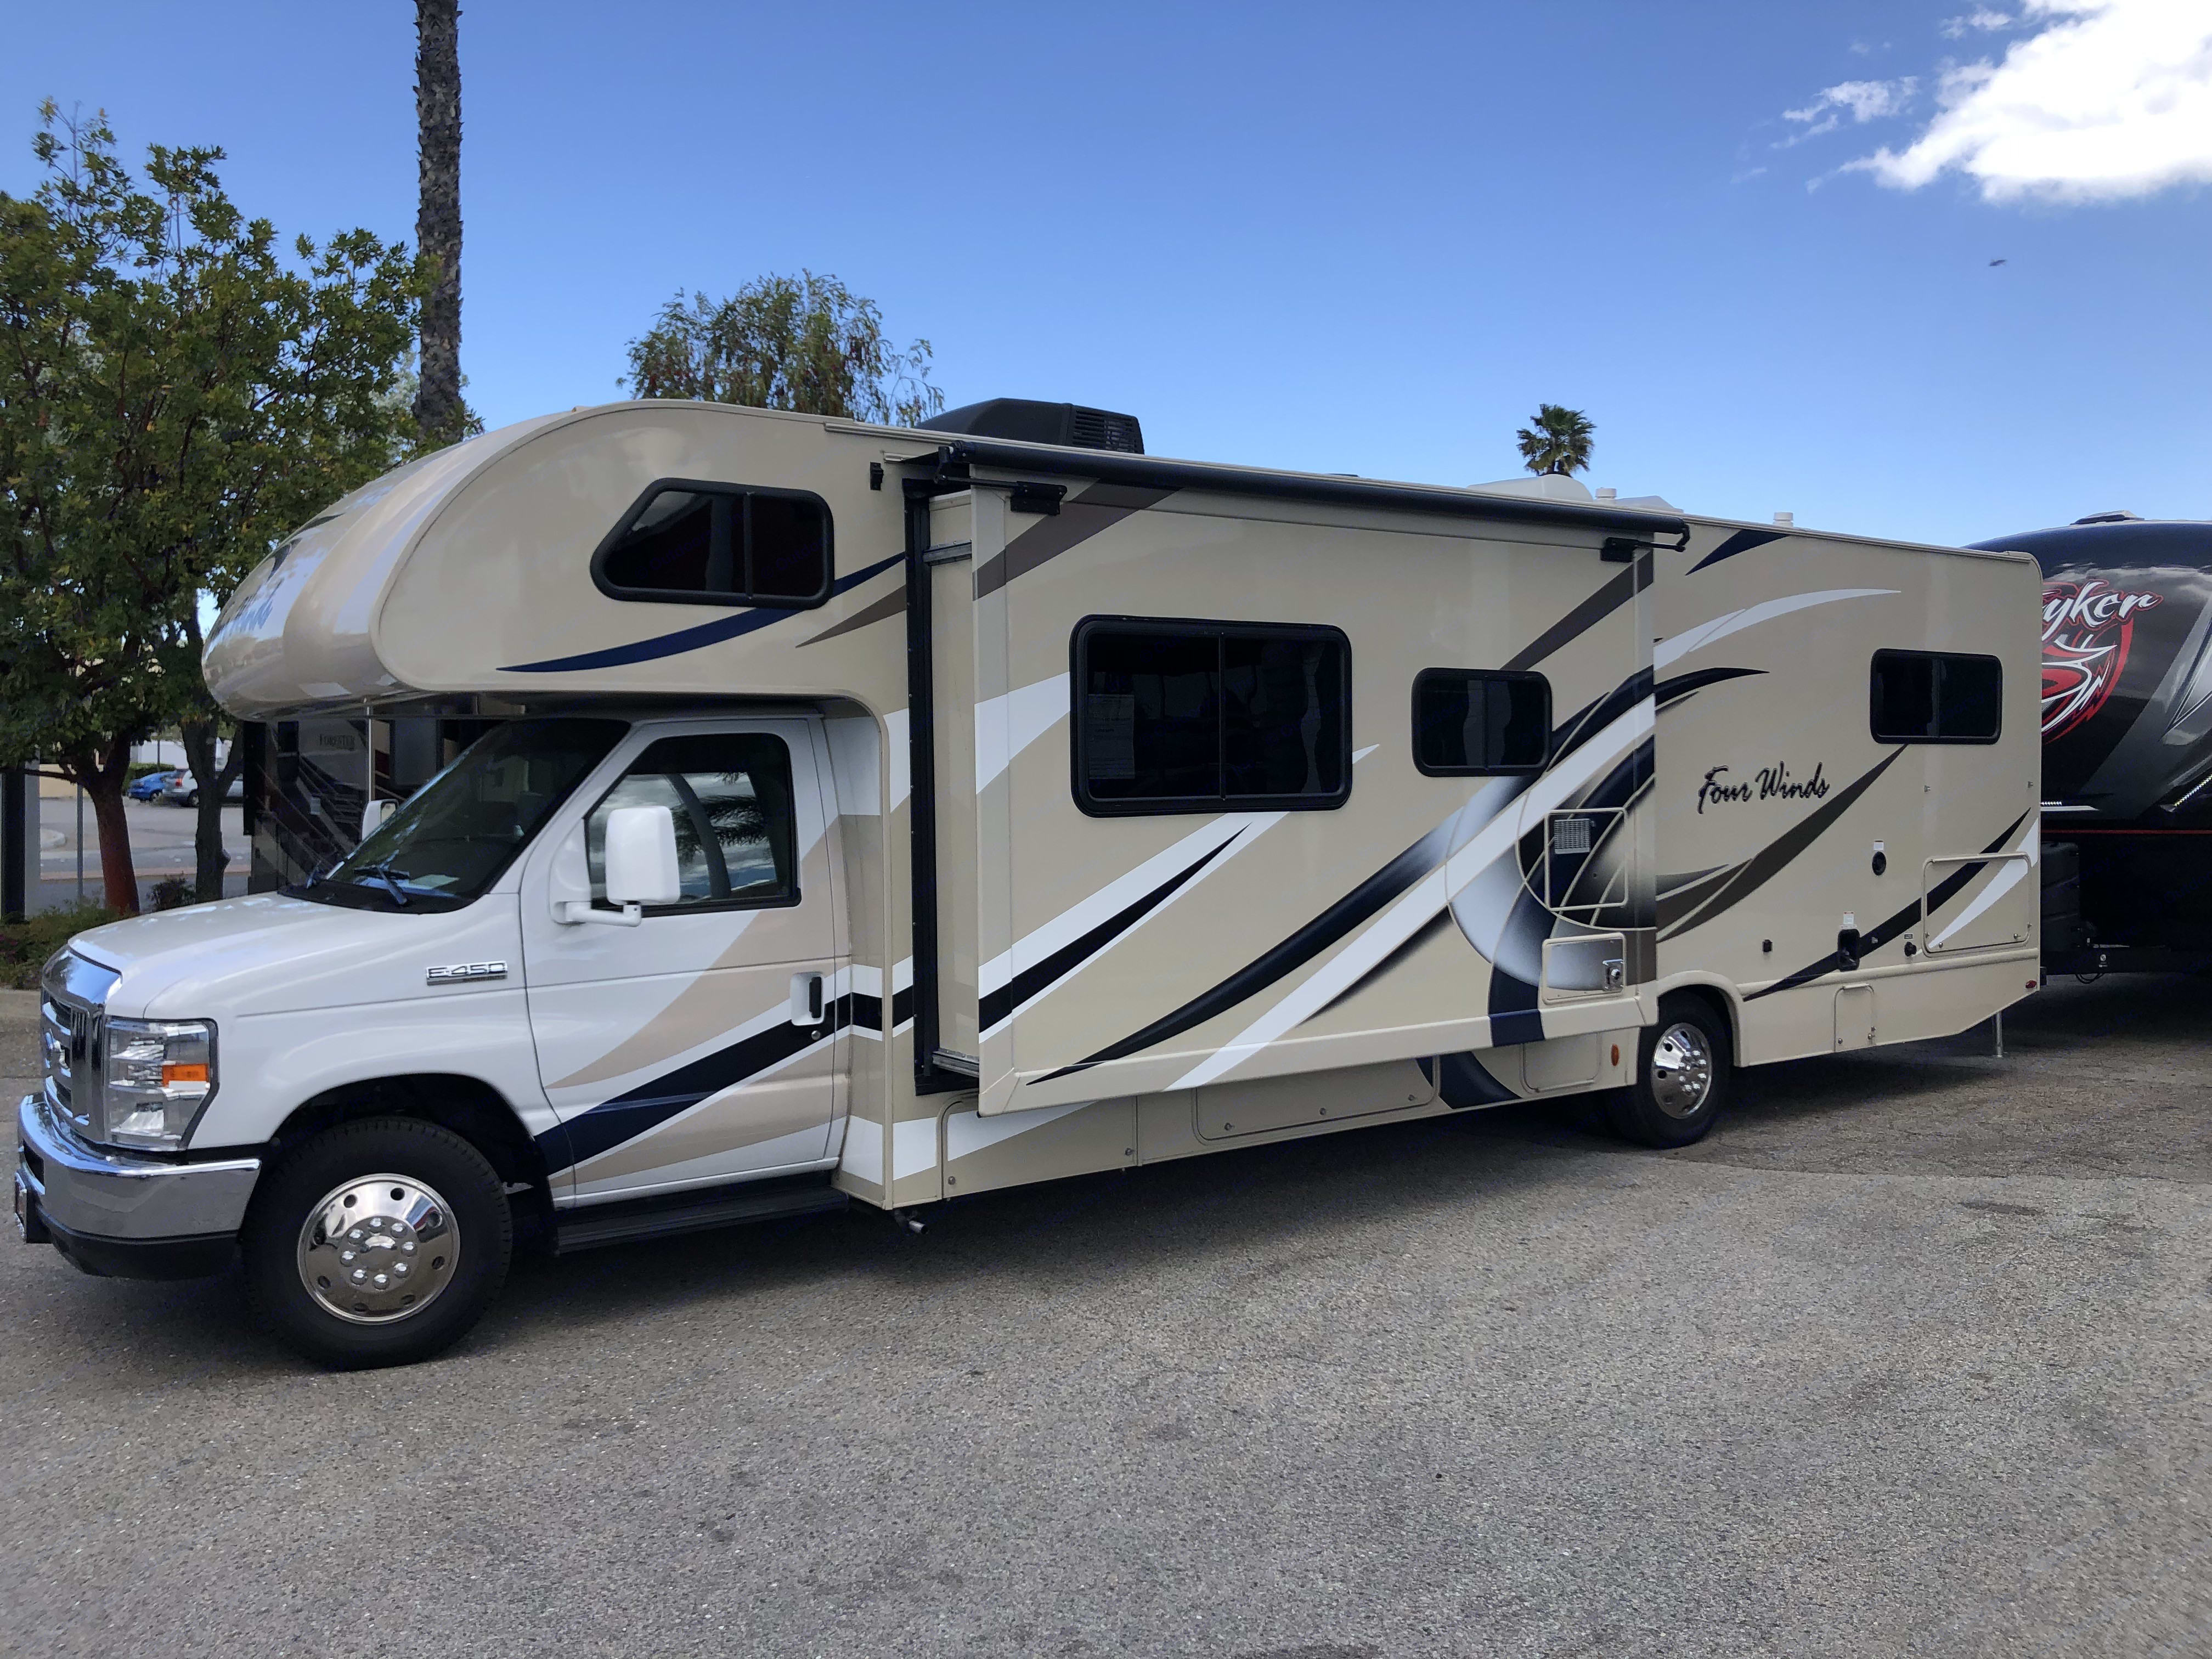 Ace Four Winds 2019 Bunk House. Ford E450 2019